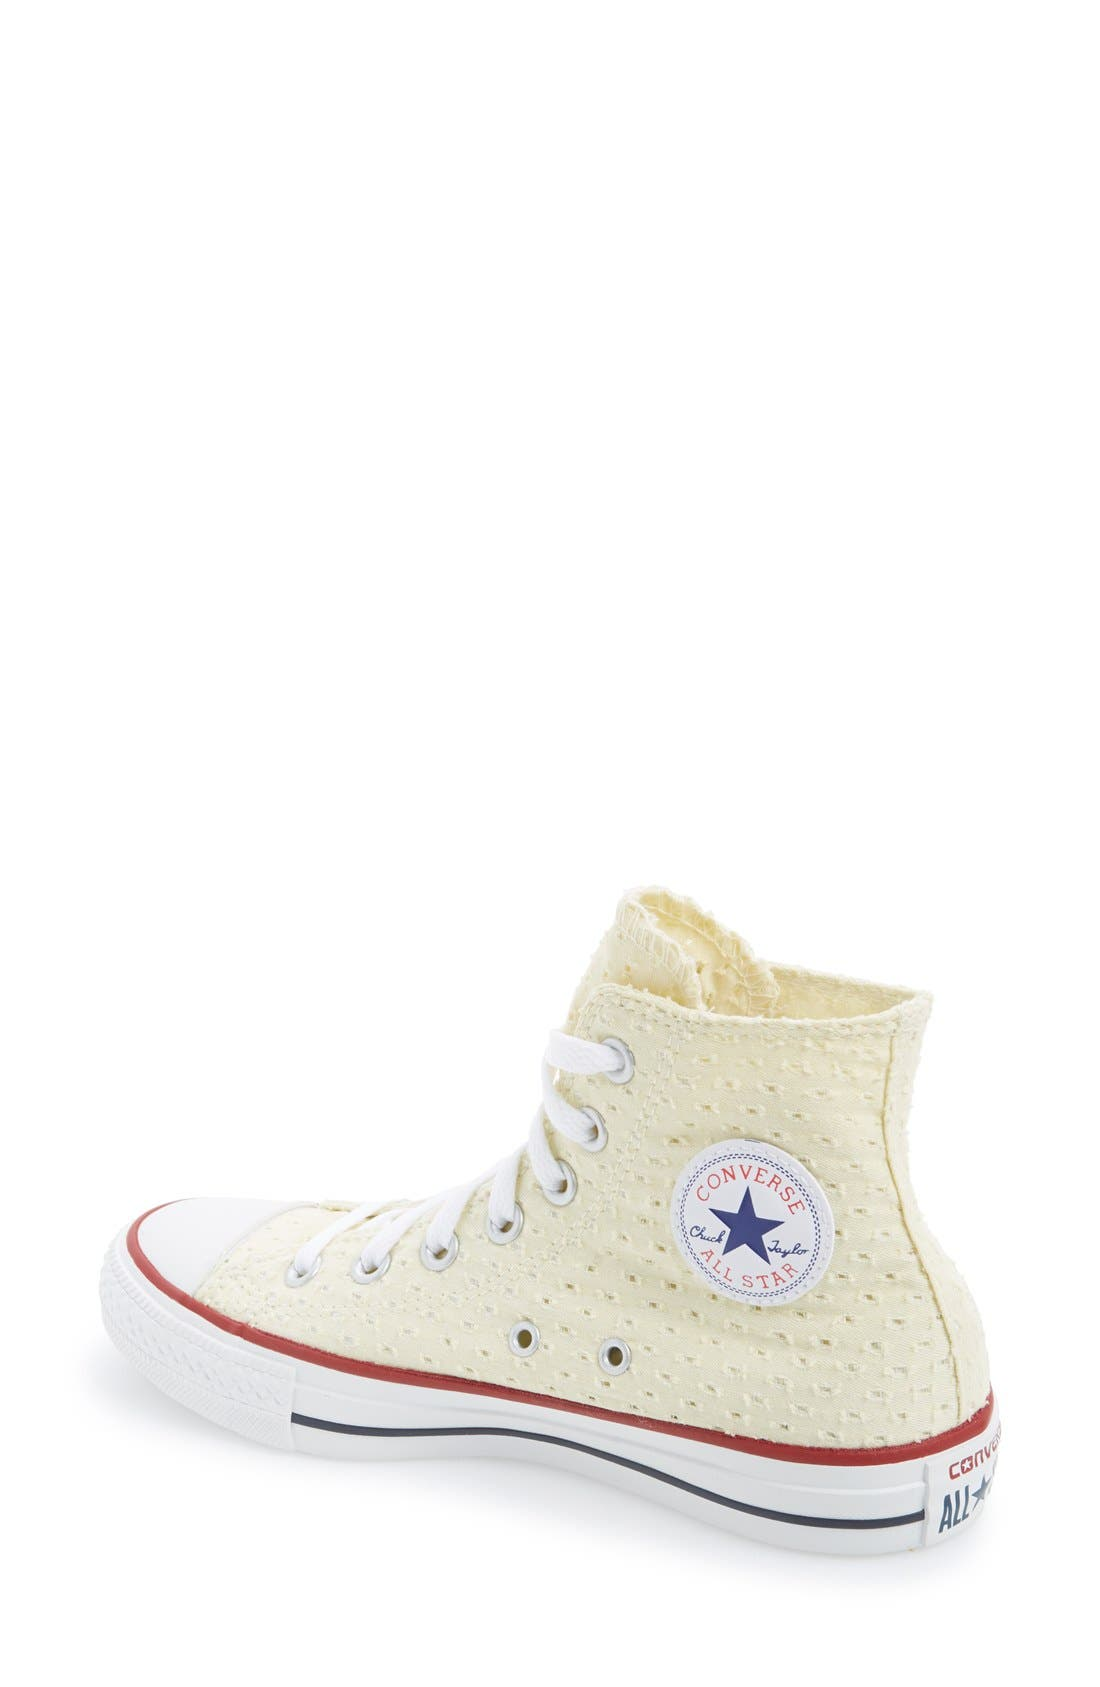 Alternate Image 2  - Converse Chuck Taylor® All Star® Eyelet Perforated High Top Sneaker (Women)